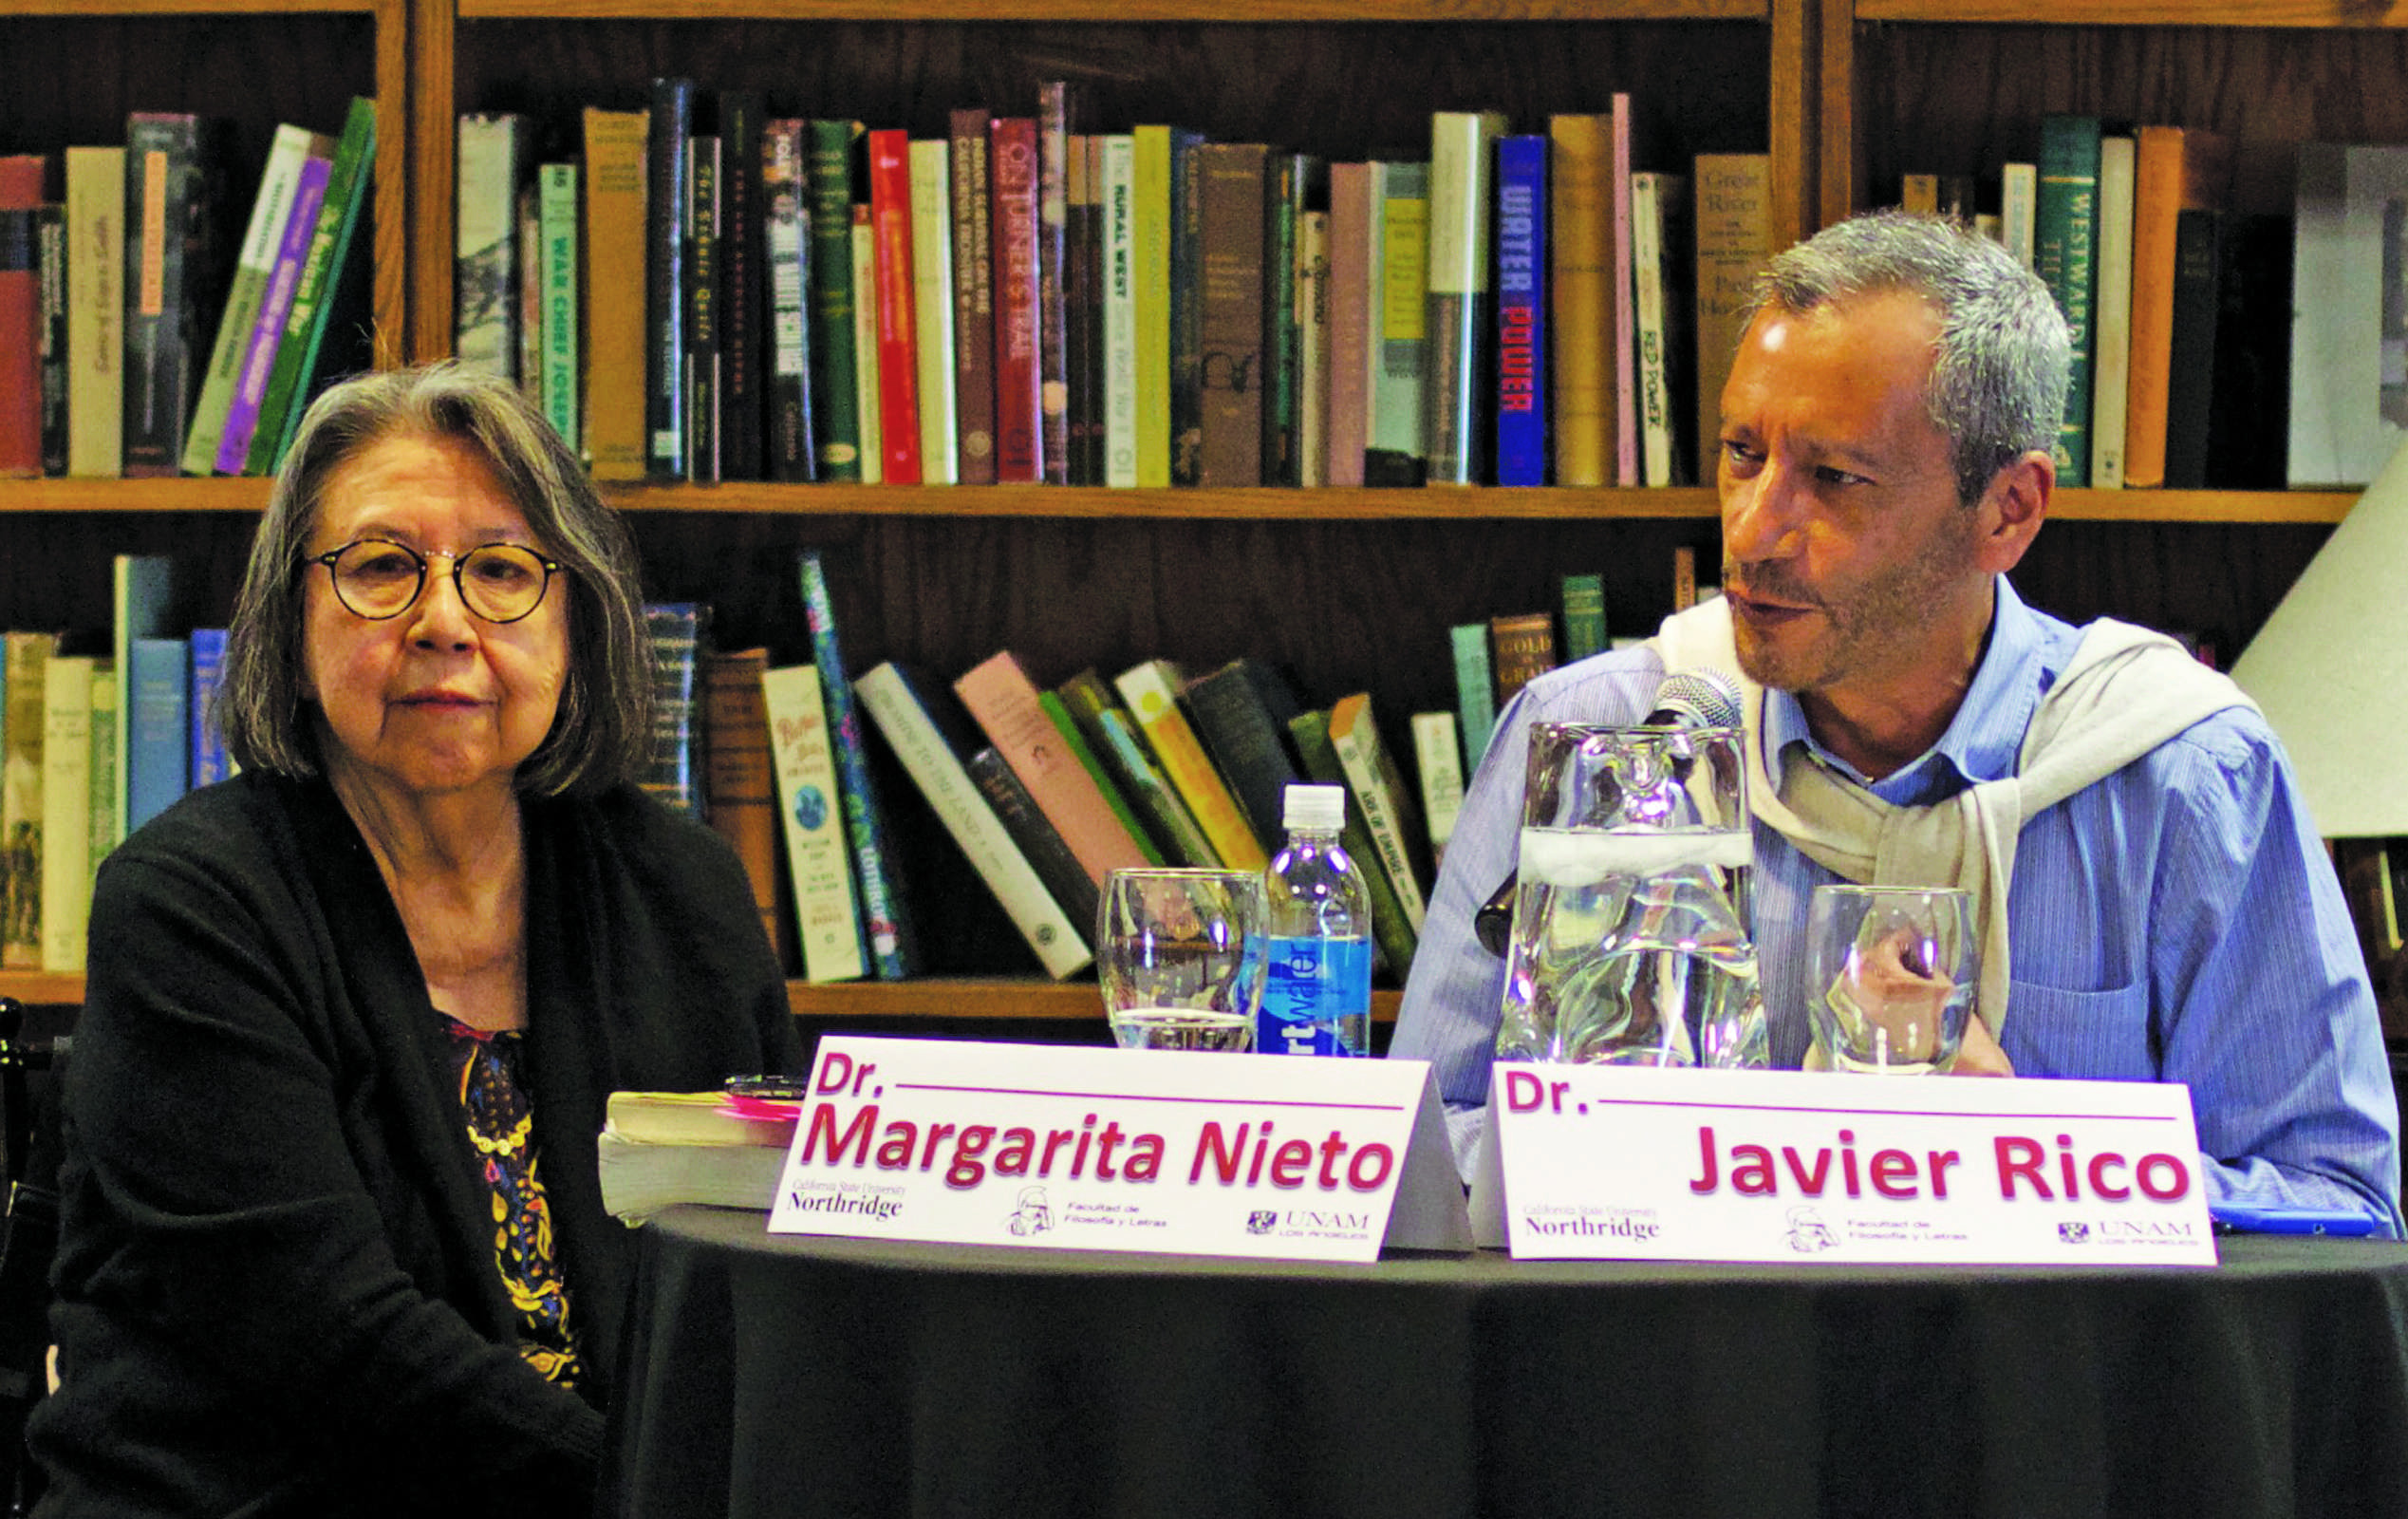 Color printing csun - Margarita Nieto Professor Of Chicana O Studies And Javier Rico A Professor